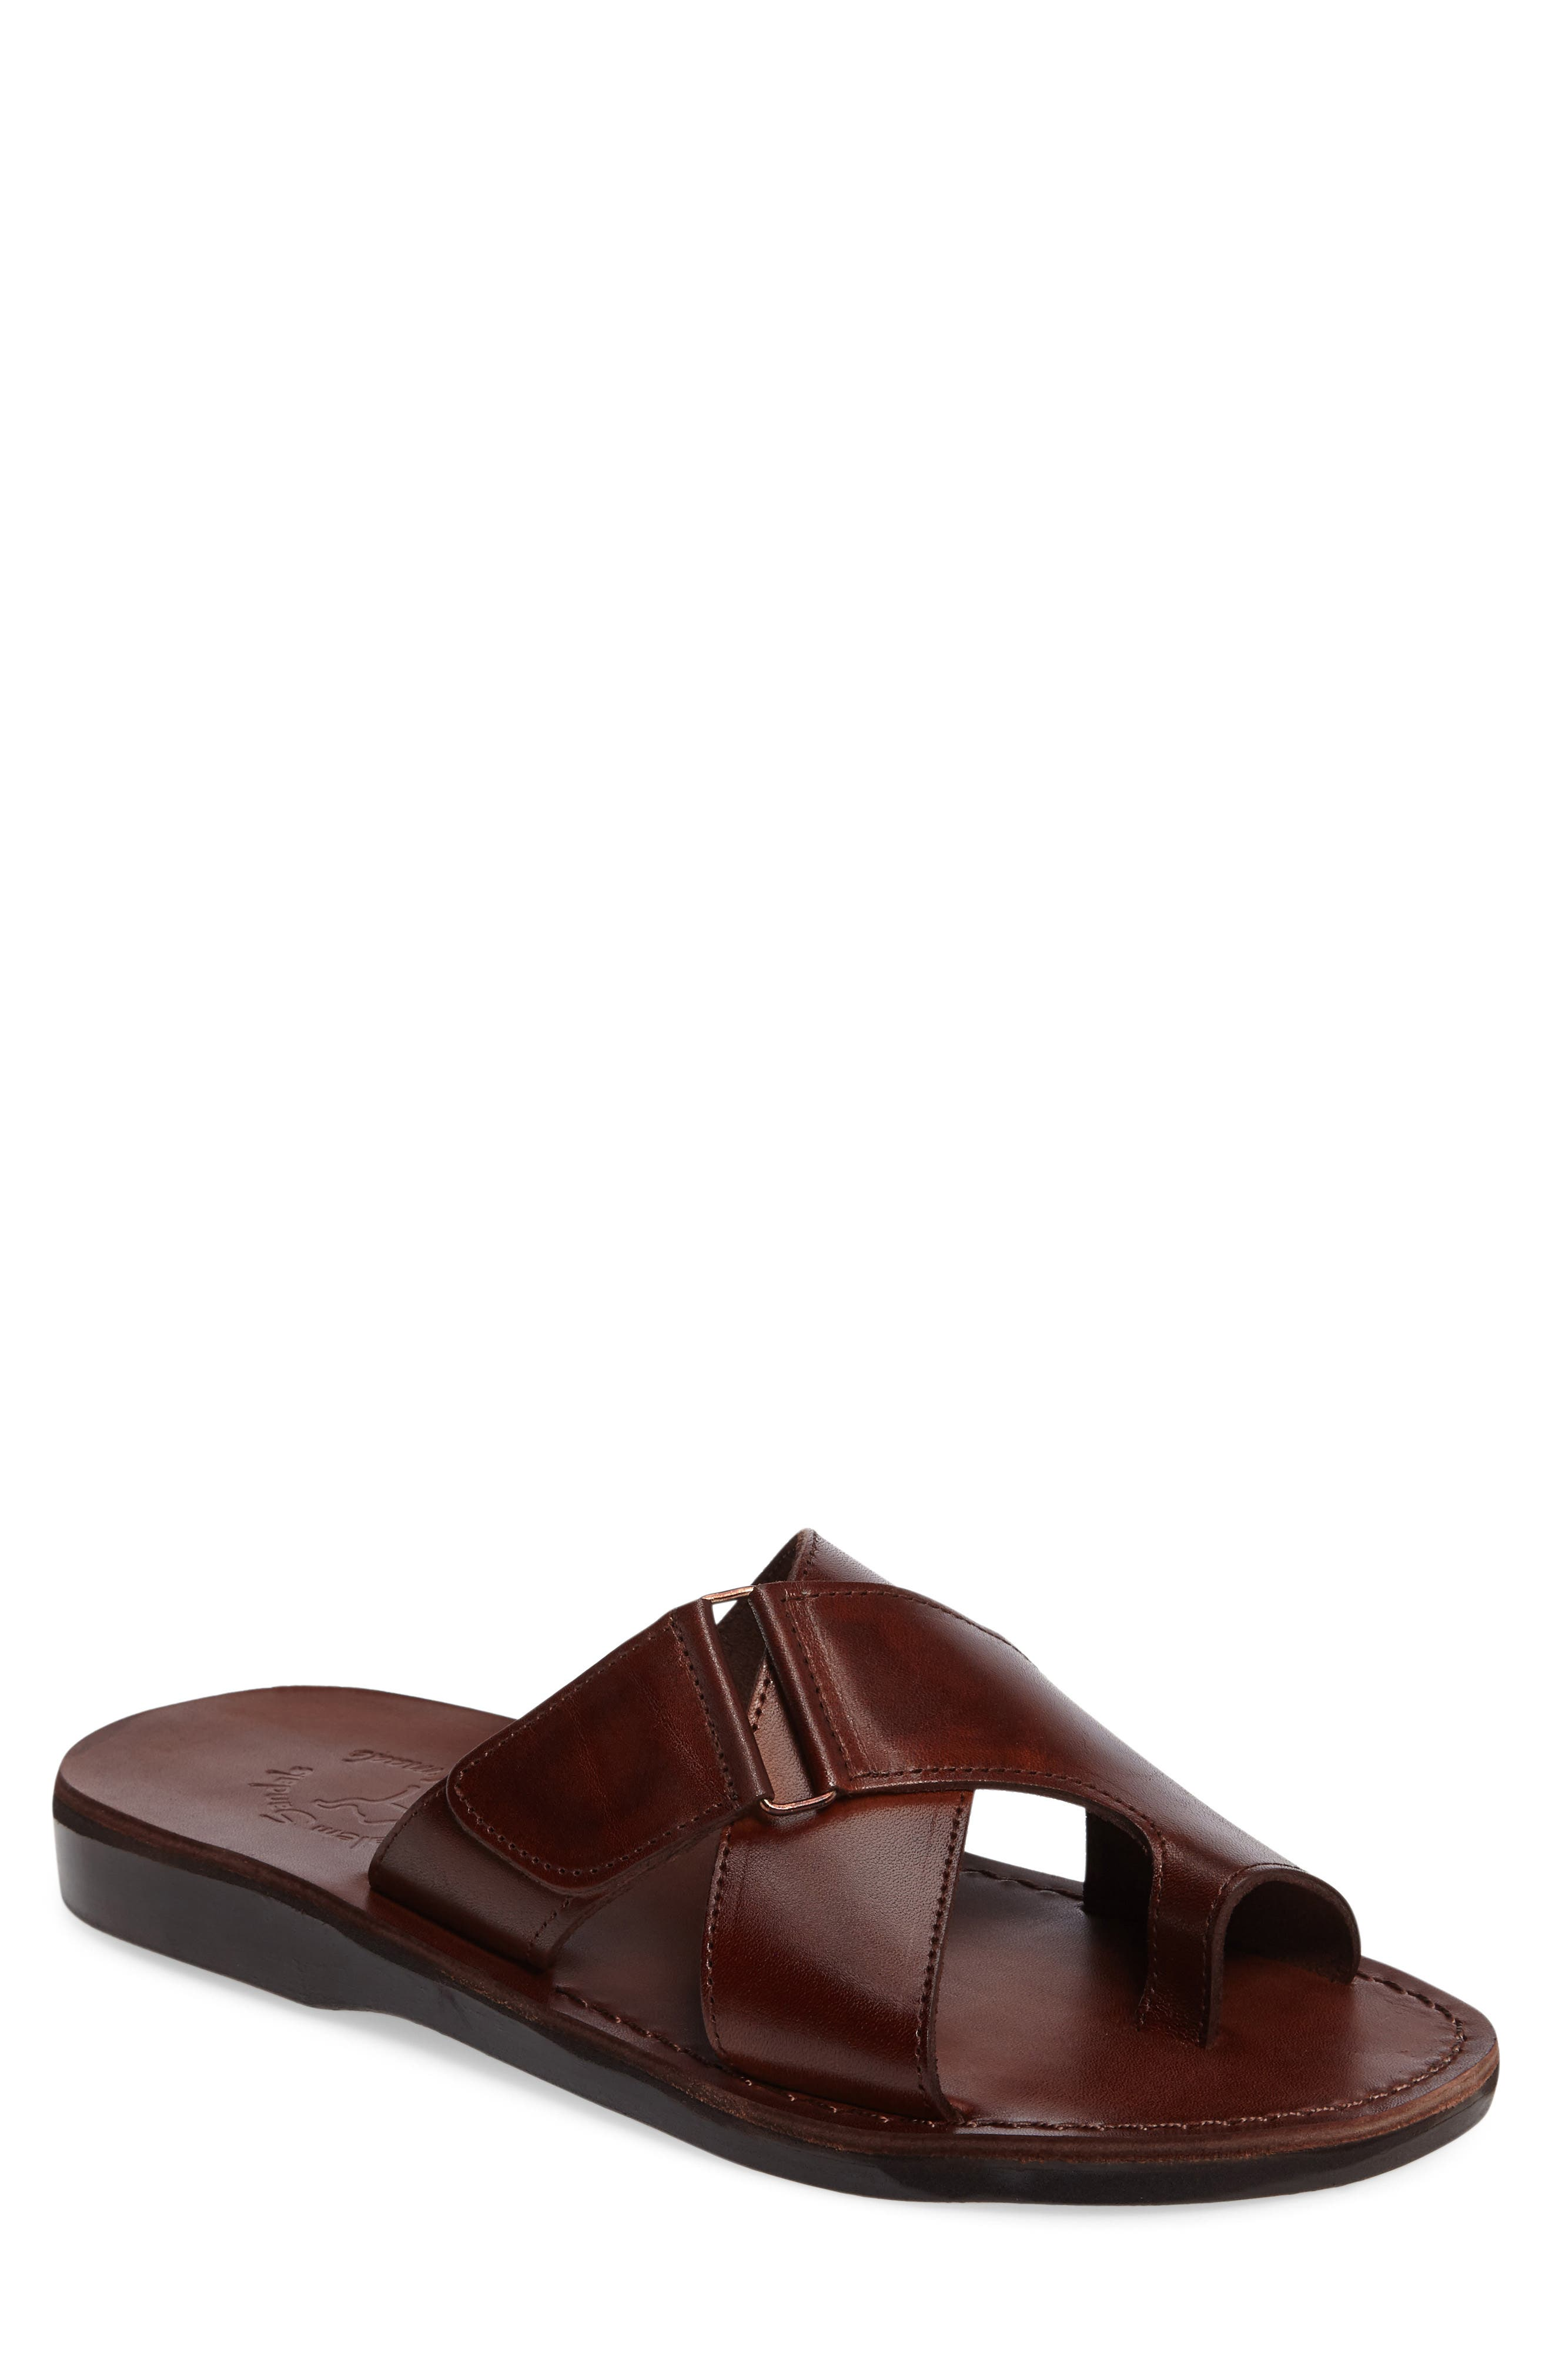 Asher Slide Sandal,                             Main thumbnail 1, color,                             Brown Leather